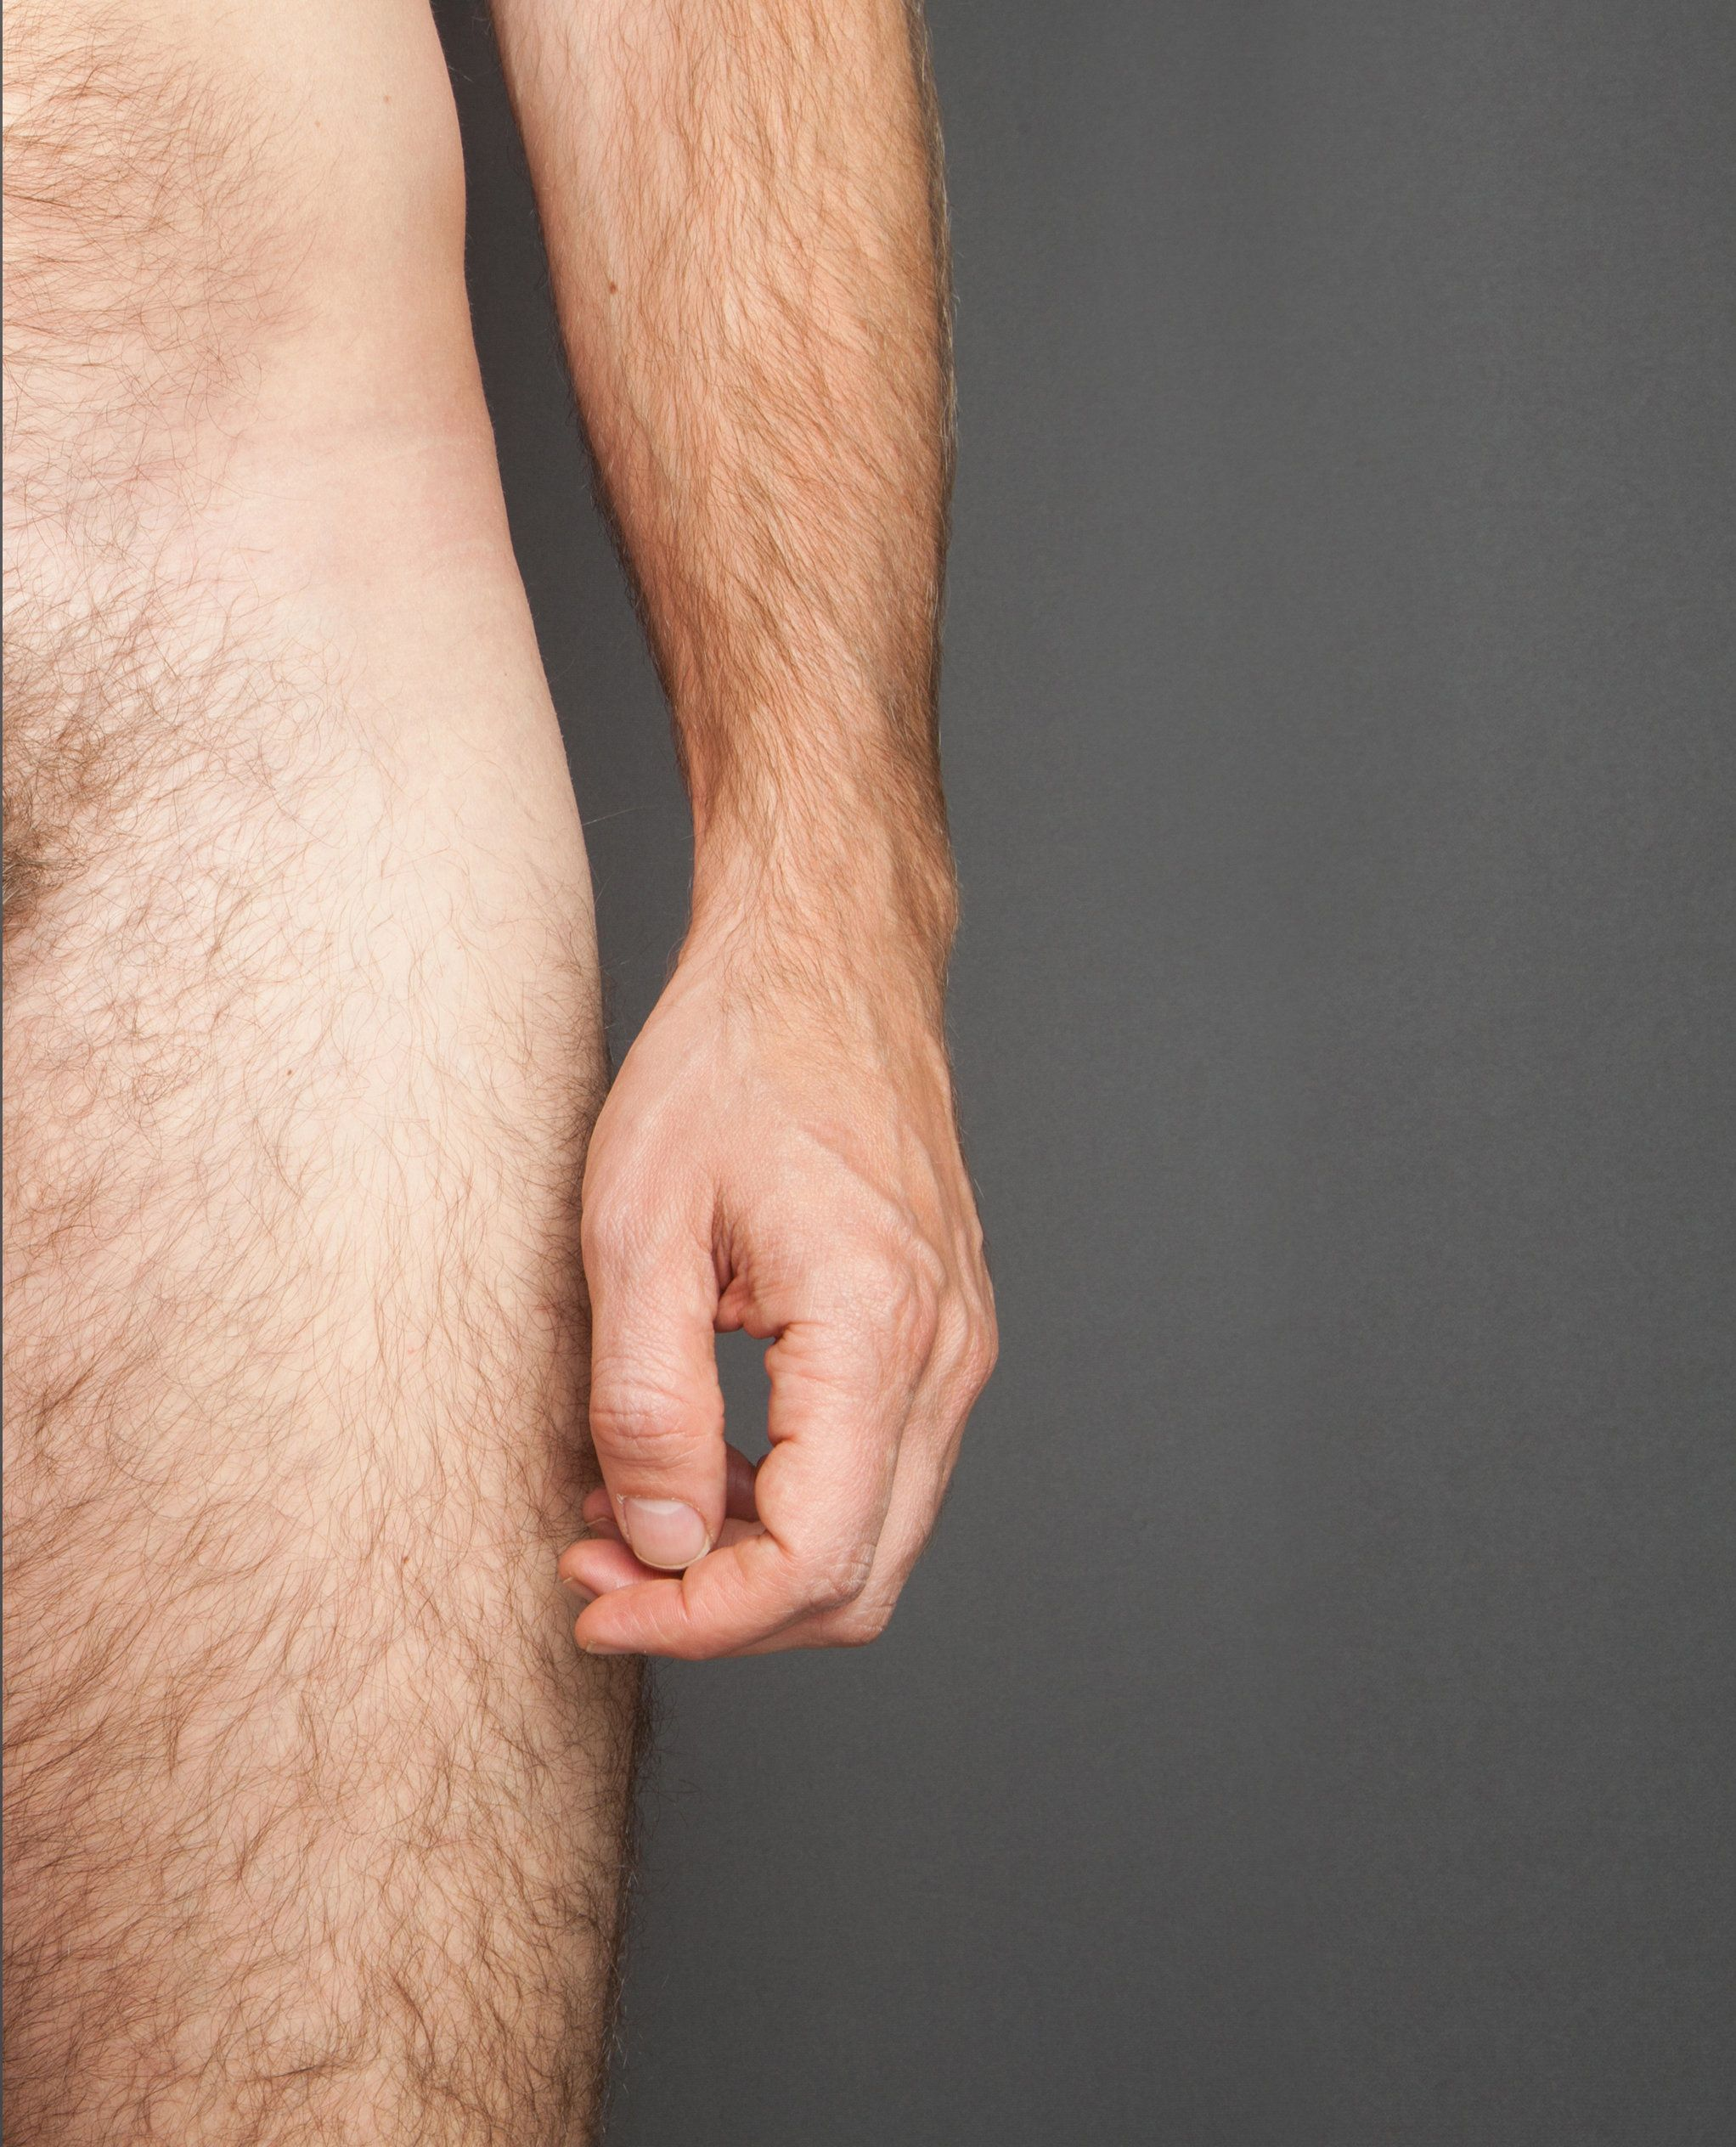 100 Guys Had Their Penises Photographed To Show The 'Bare Reality' Of Being A